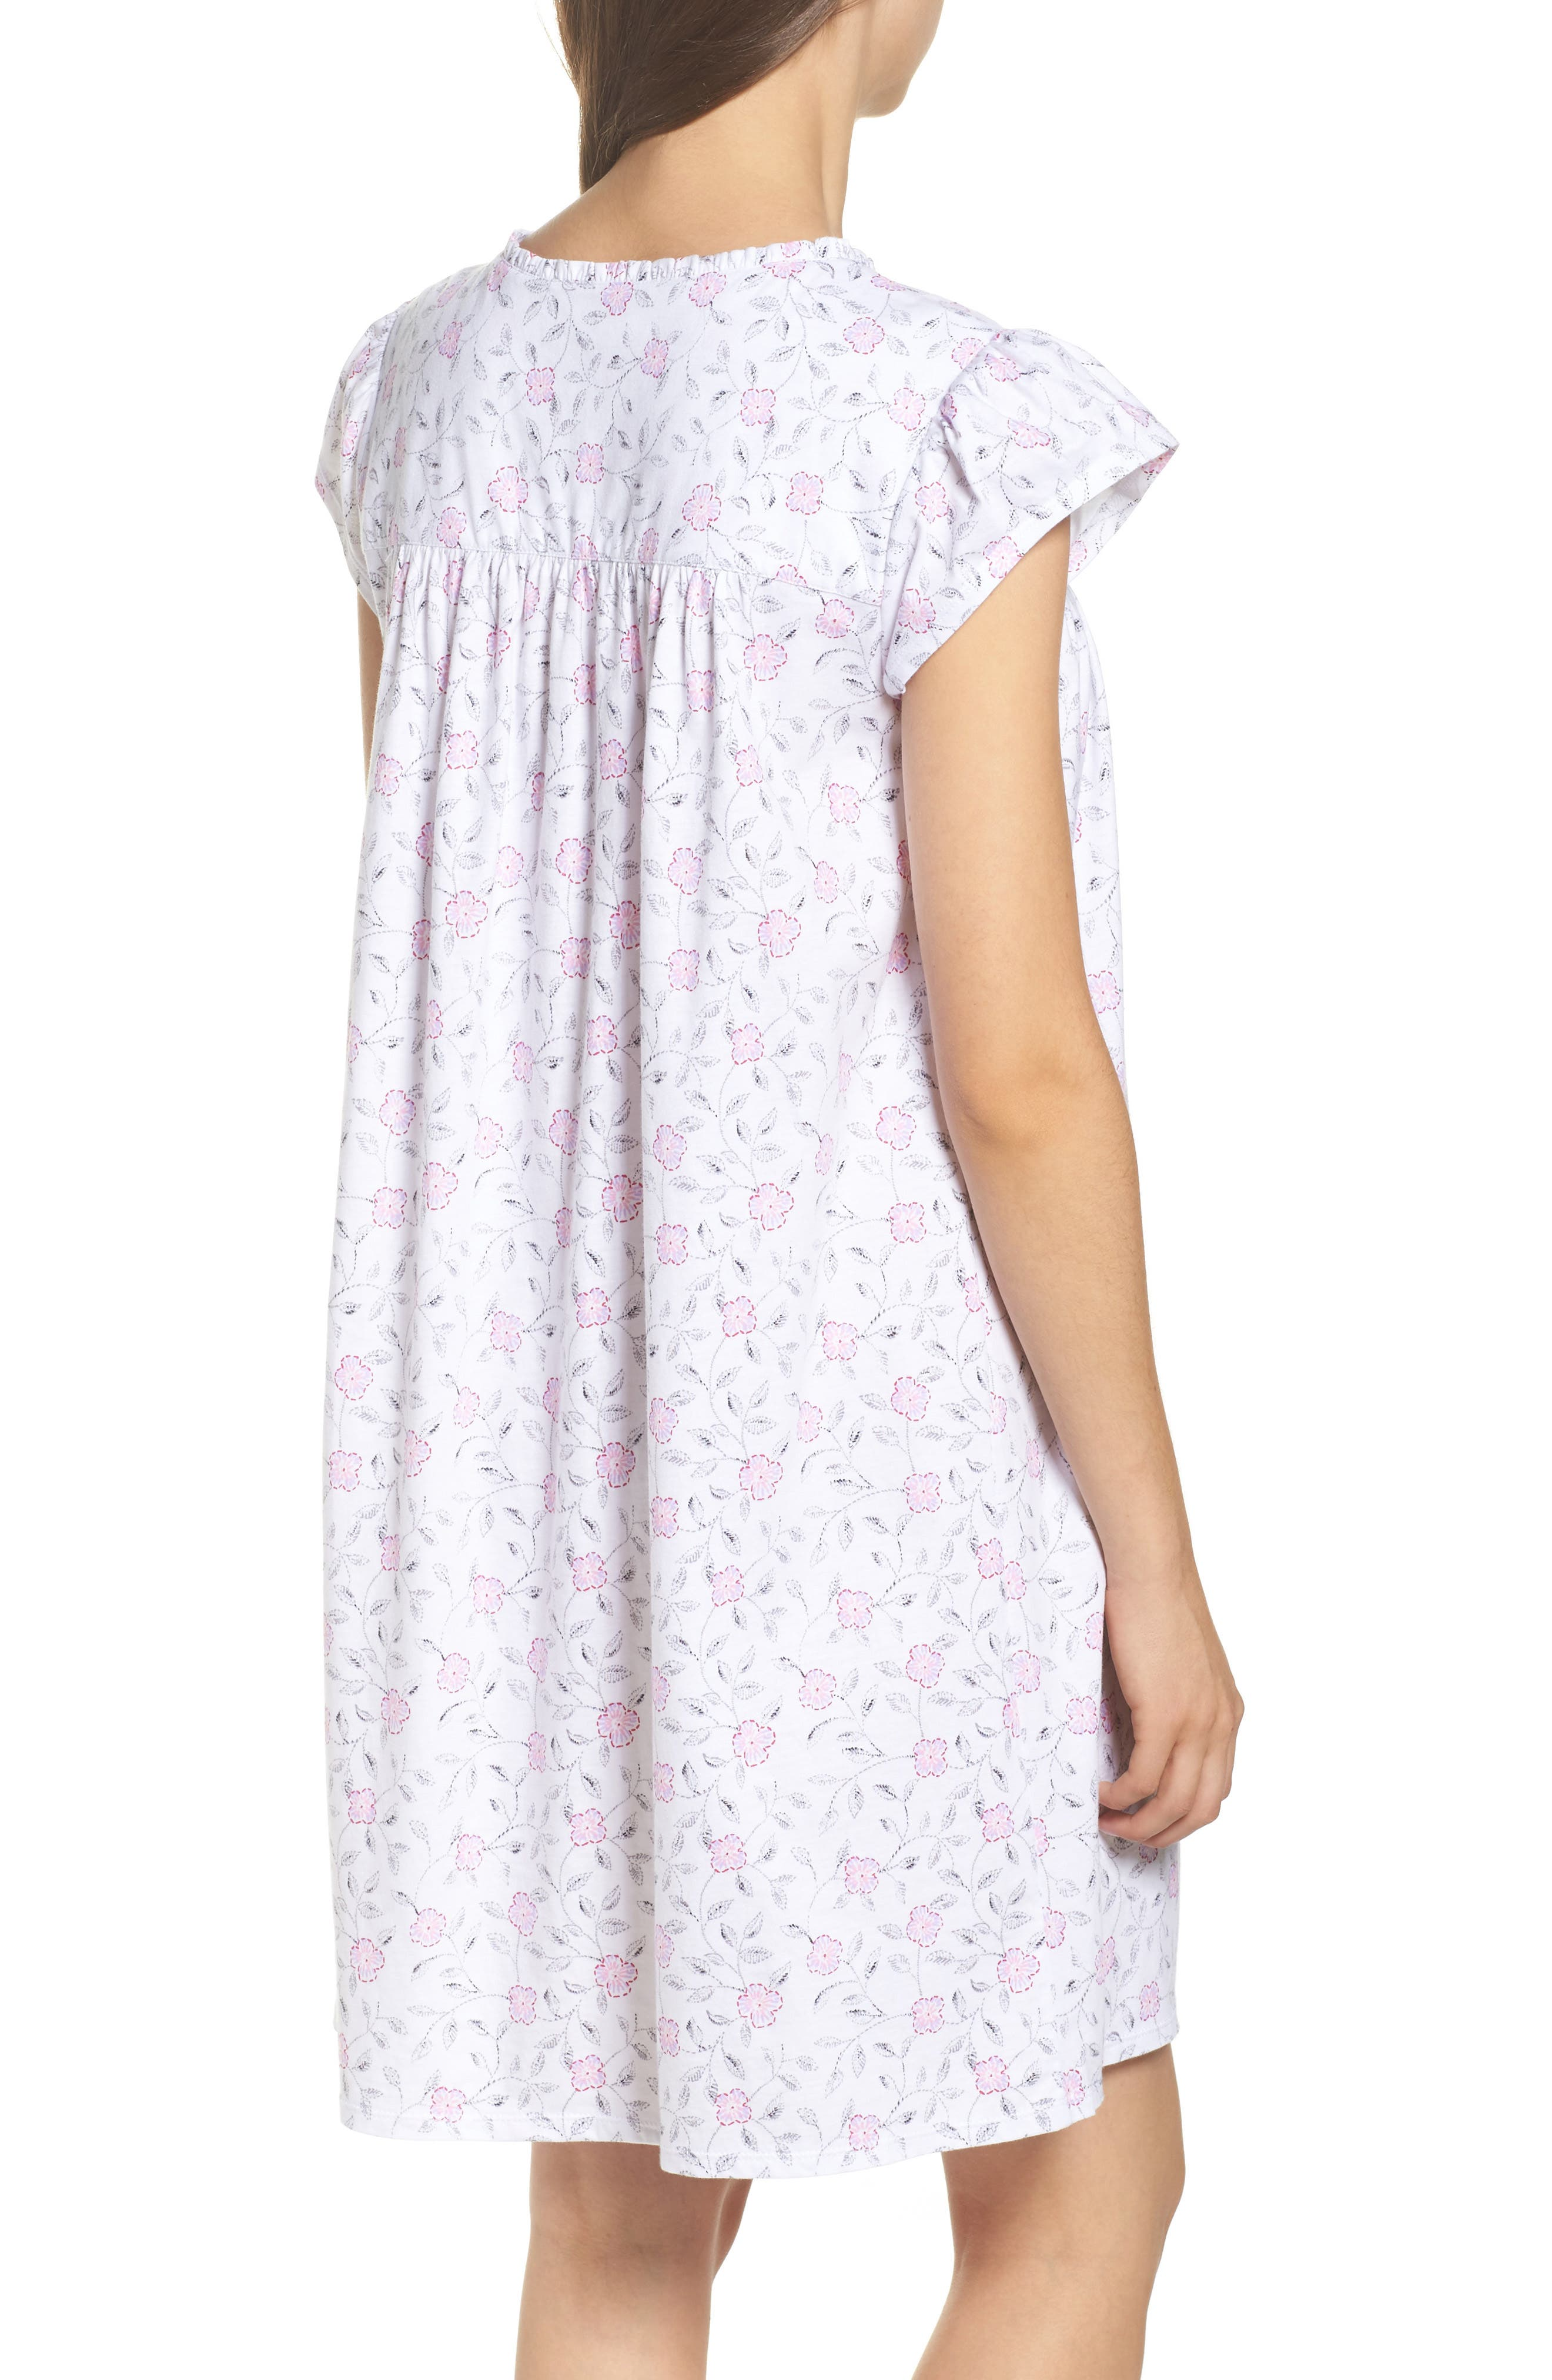 Cotton Jersey Nightgown,                             Alternate thumbnail 2, color,                             White Floral Scroll